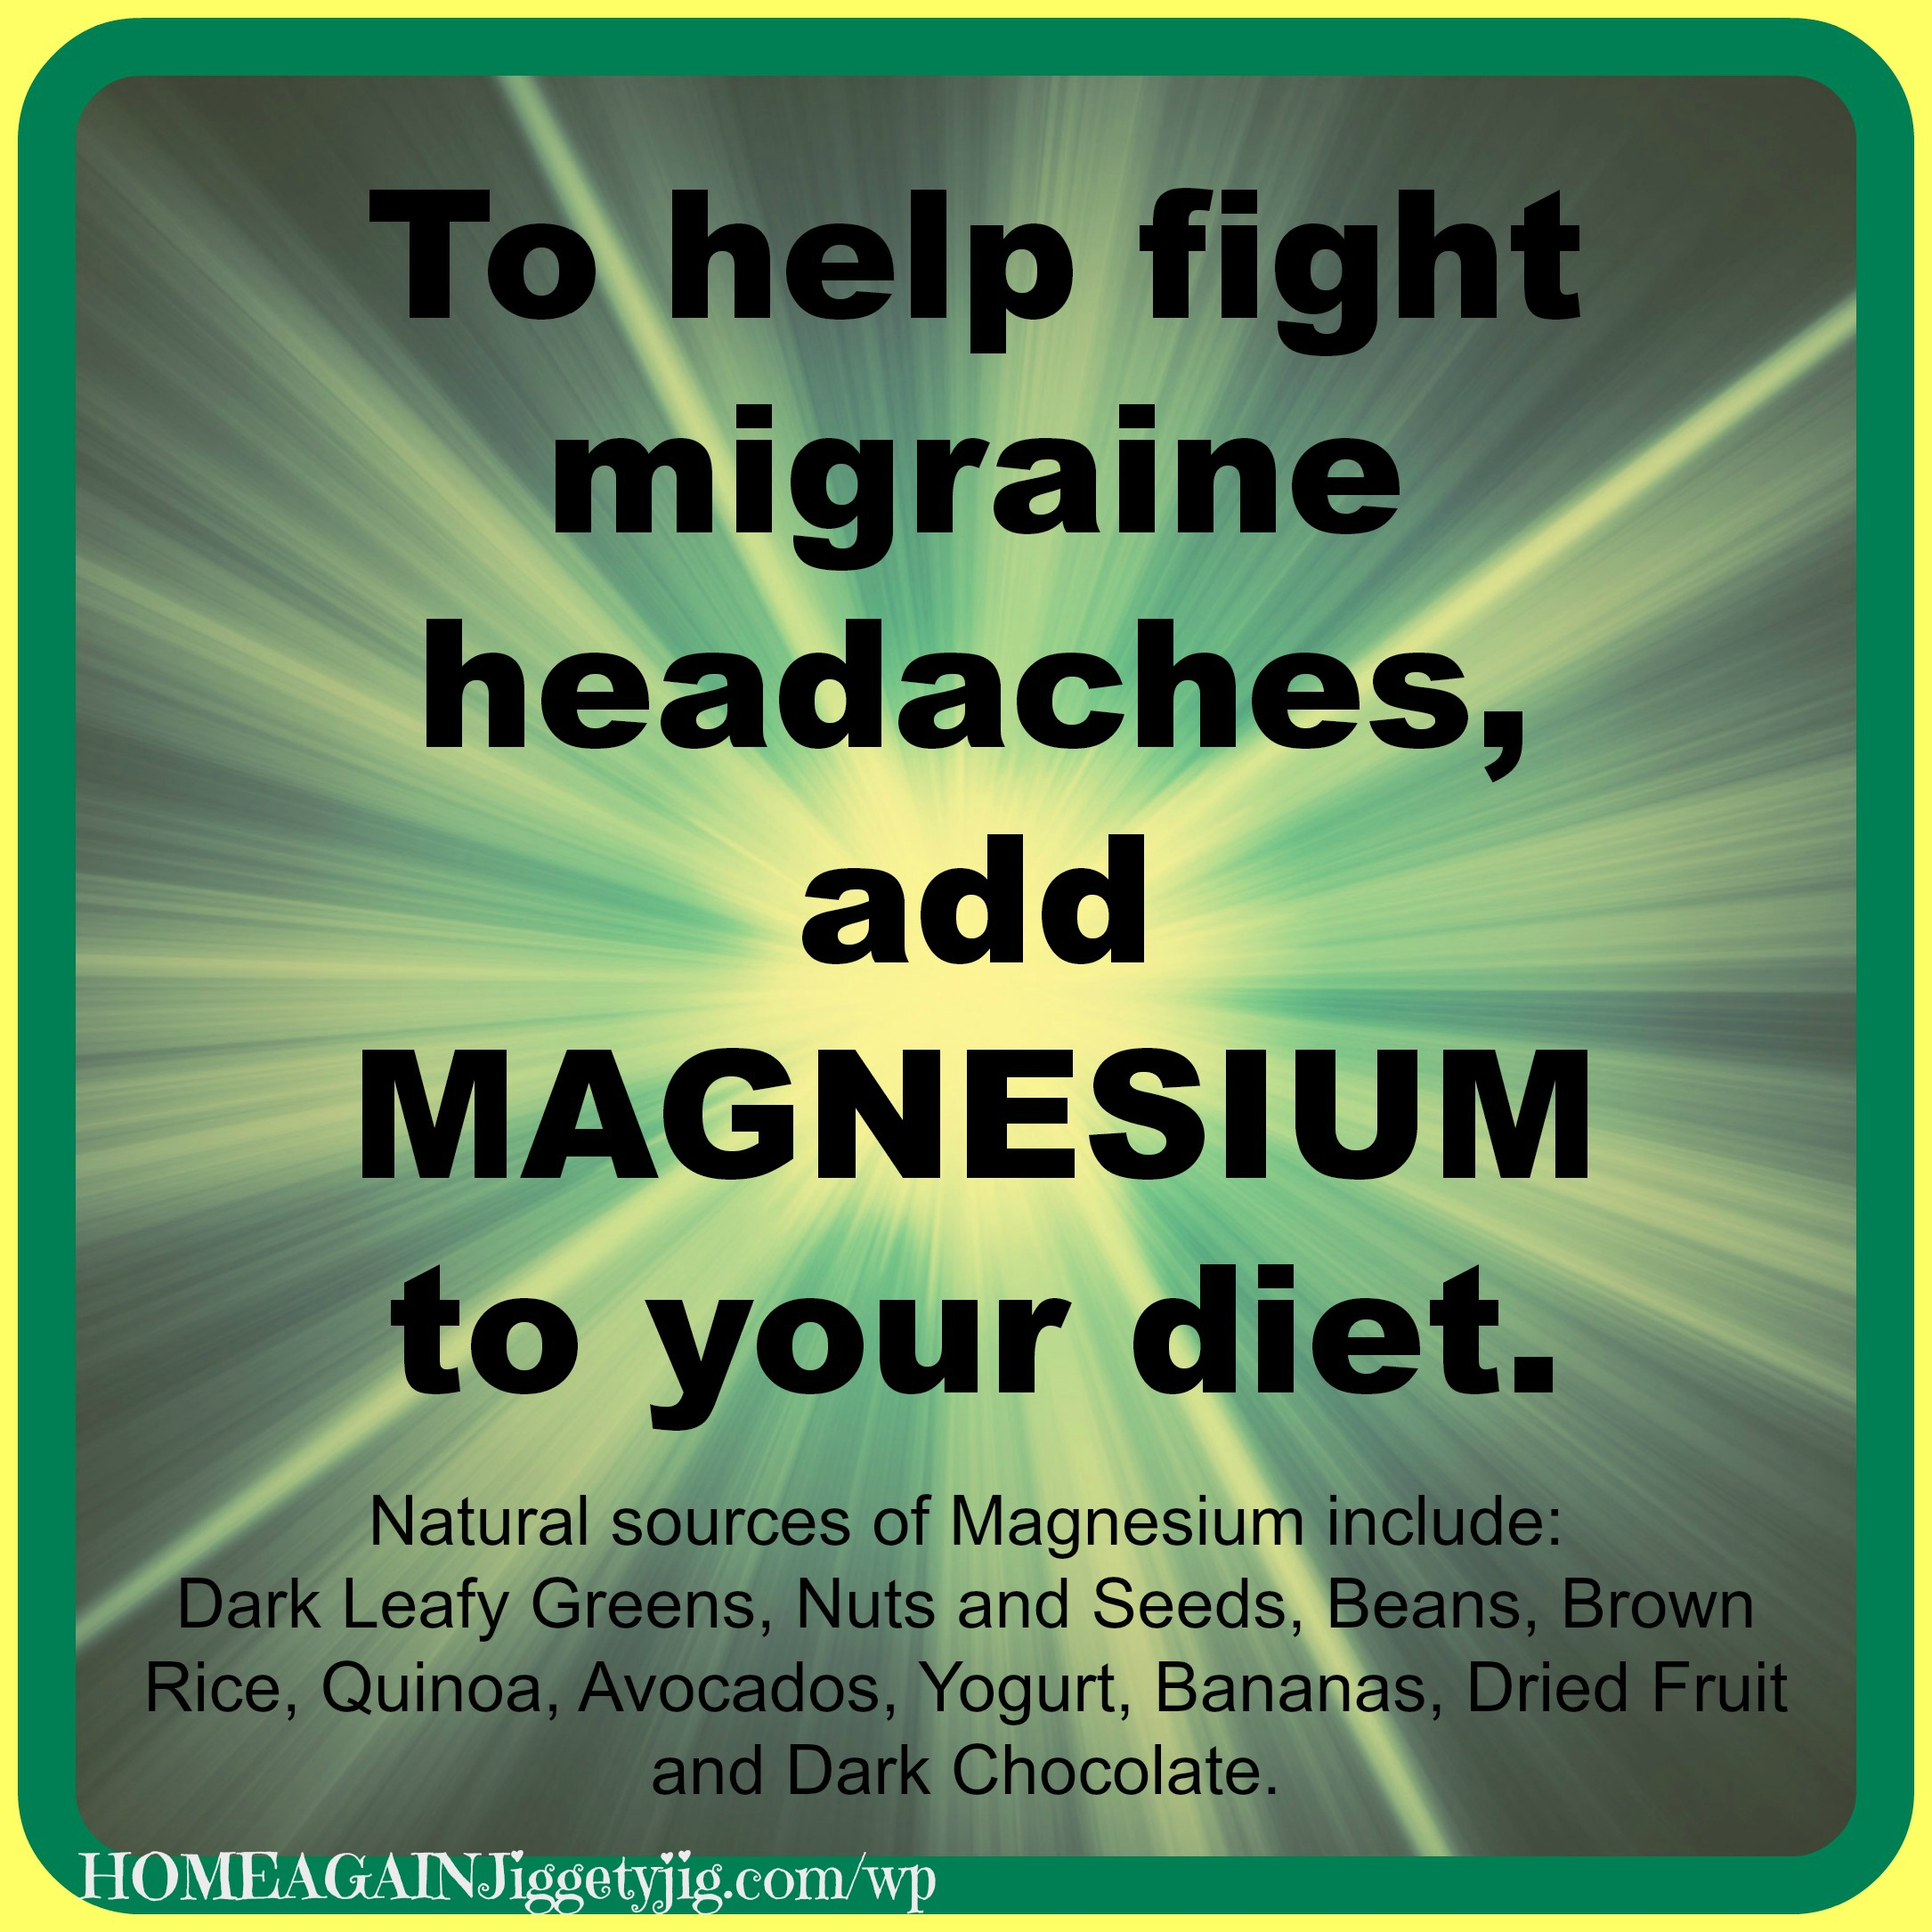 HELP STOP MIGRAINE HEADACHES – With Magnesium